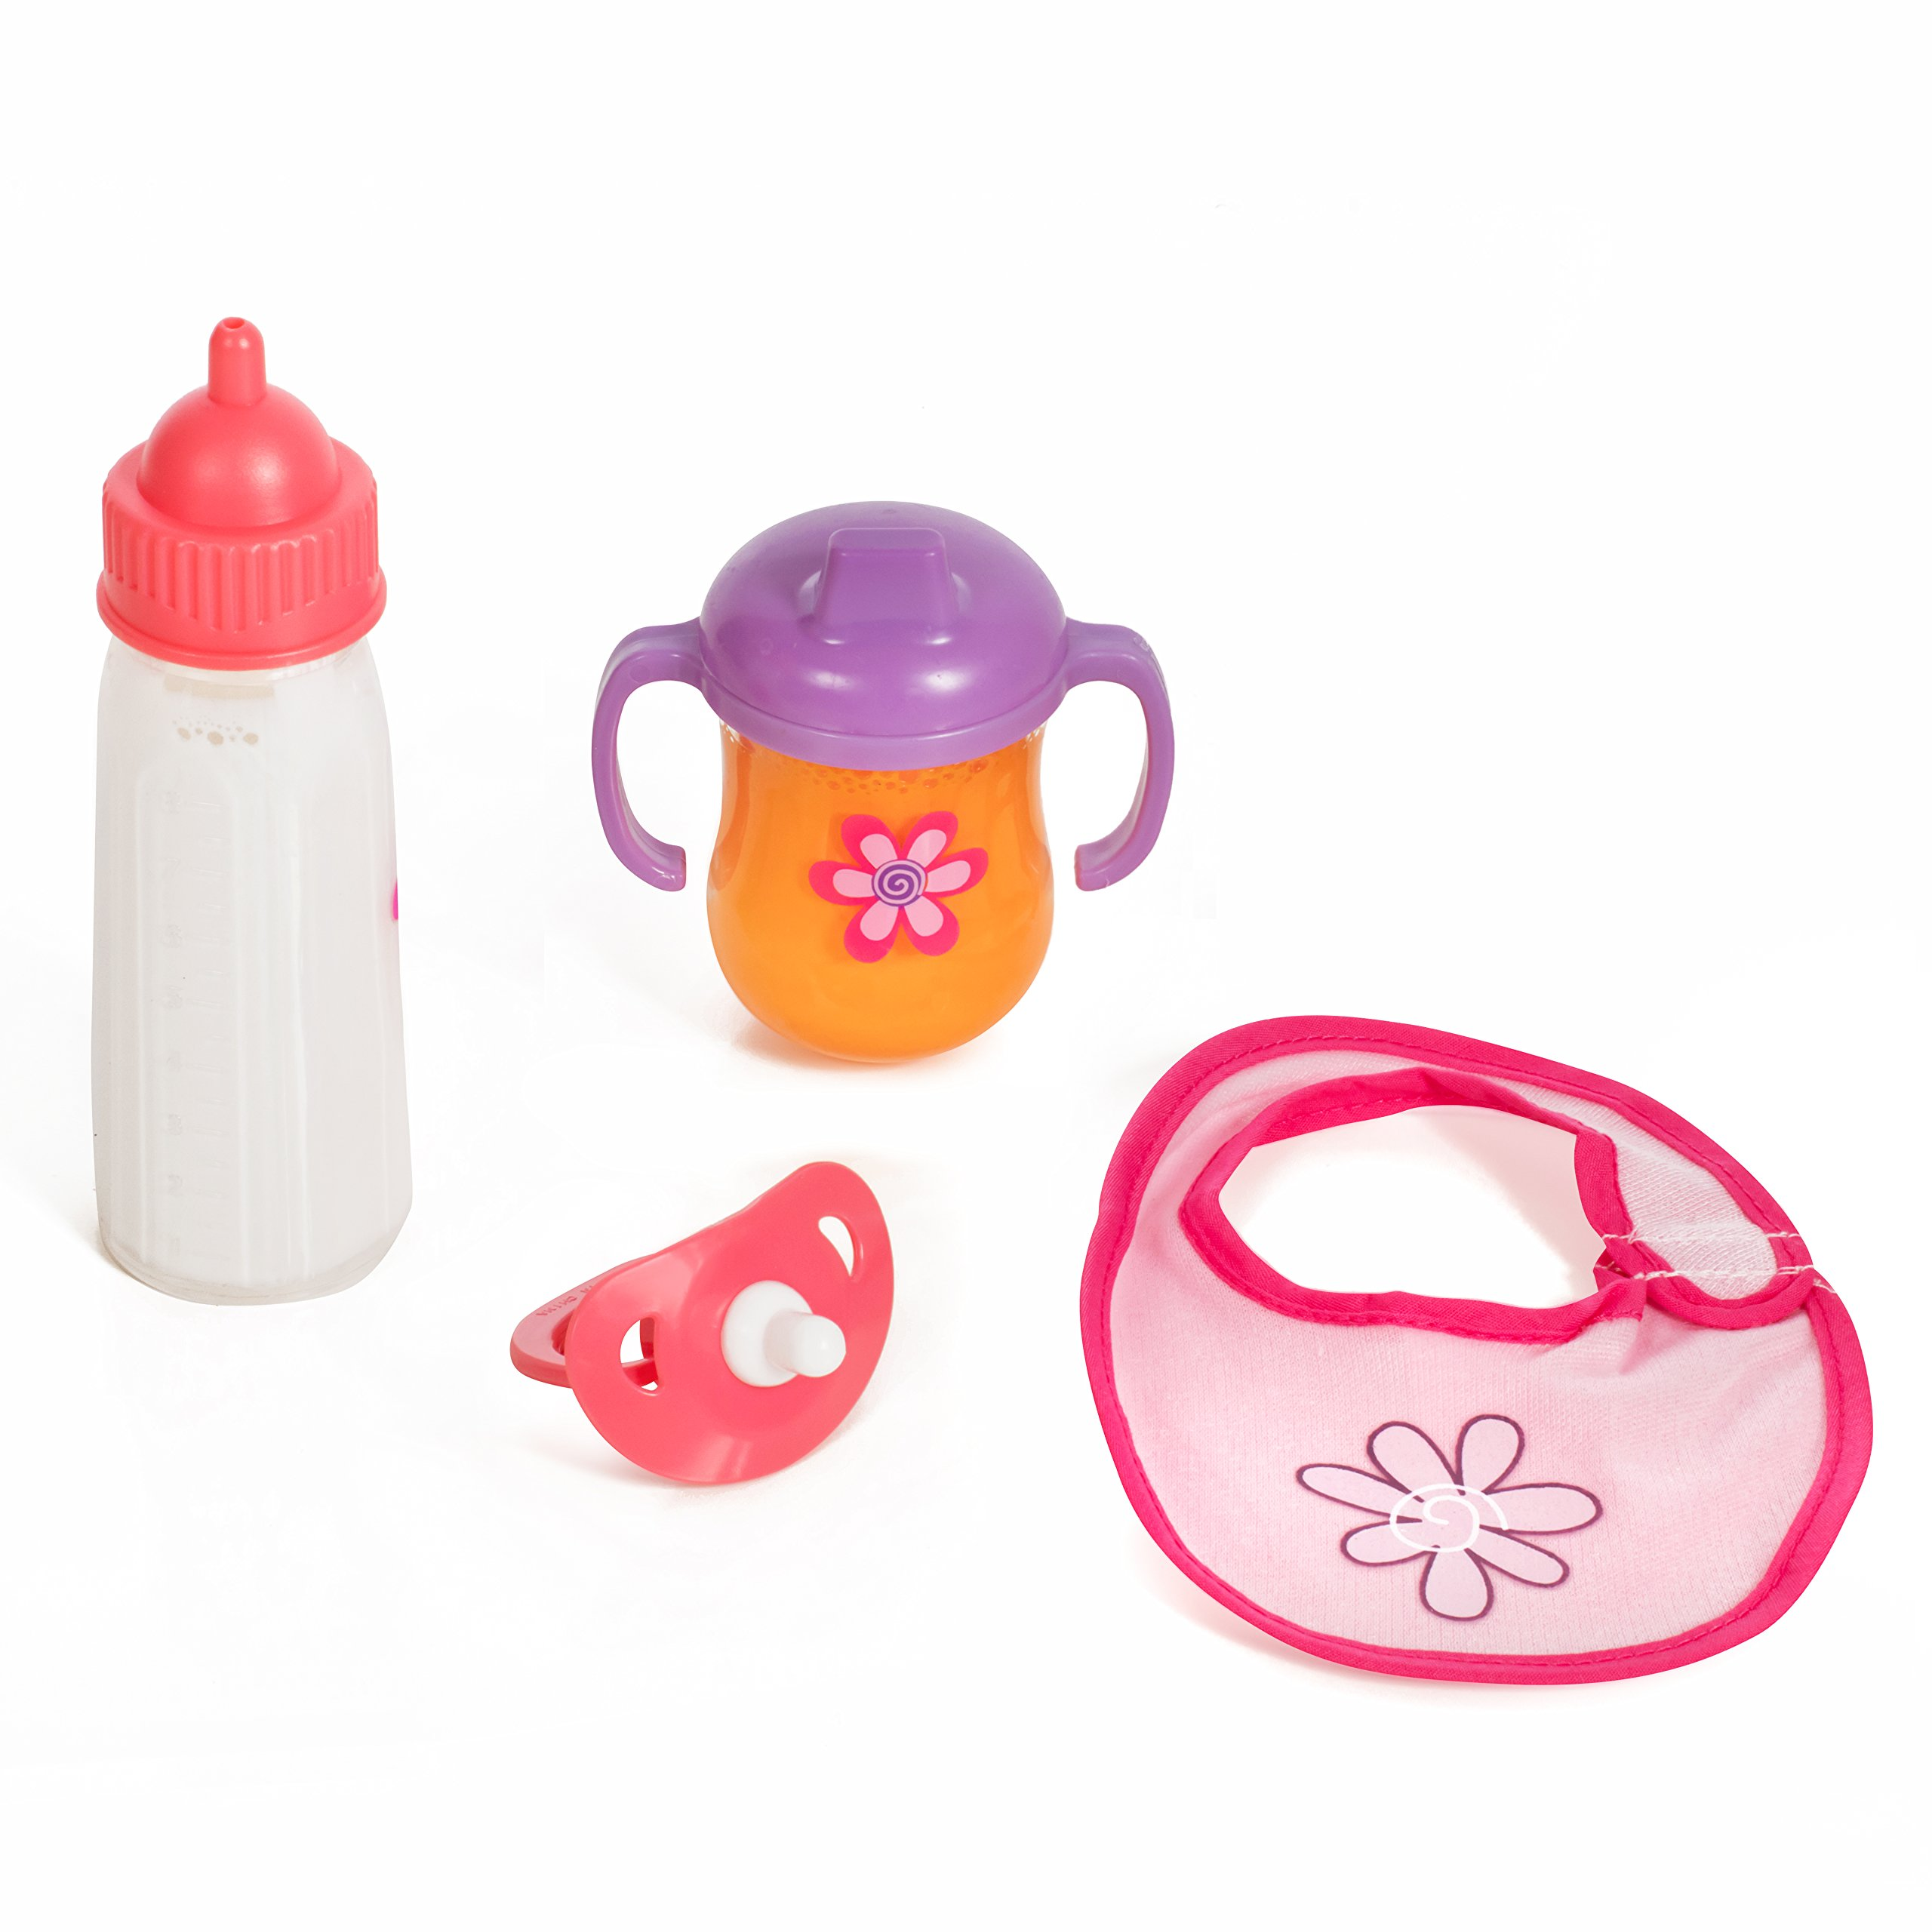 Mommy & Me Baby Doll 4 Piece Feeding Set - Includes A Magic Disappearing Milk Bottle and Sippy Cup